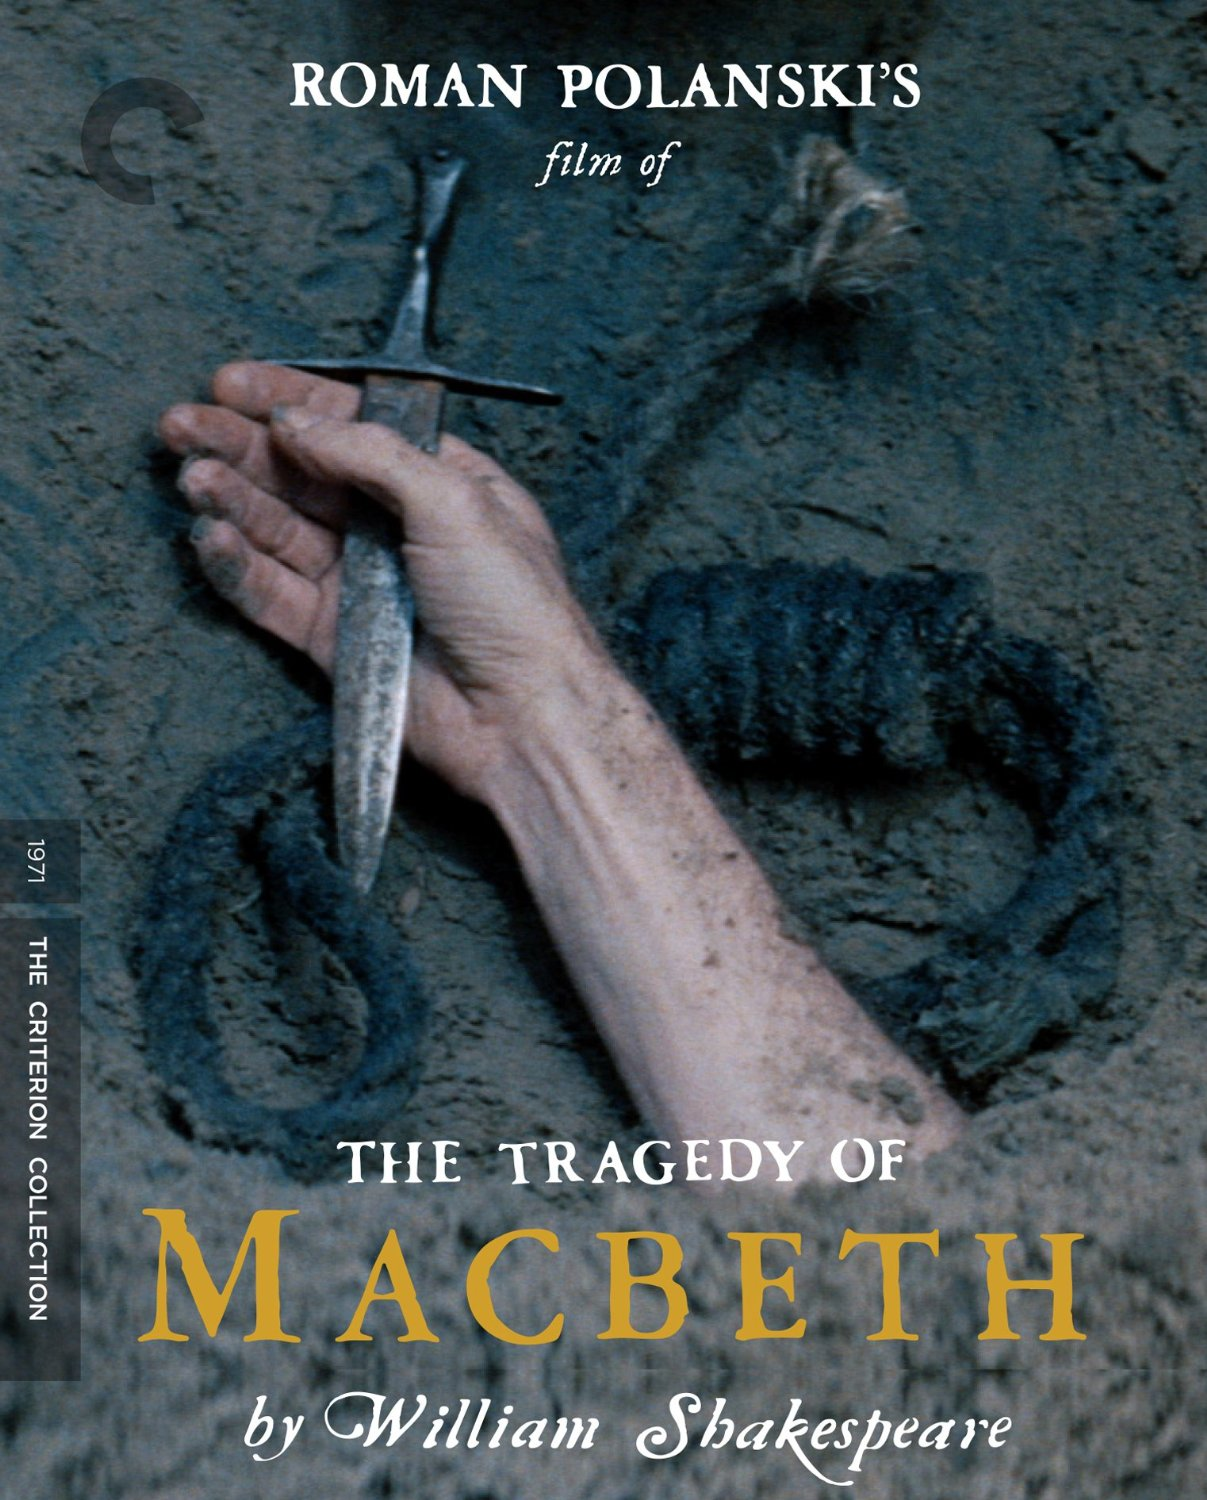 an analysis of shakespeares macbeth as a tragic hero Get free homework help on william shakespeare's macbeth: play summary, scene summary and analysis and original text, quotes, essays, character analysis, and filmography courtesy of cliffsnotes in macbeth , william shakespeare's tragedy about power, ambition, deceit, and murder, the three.